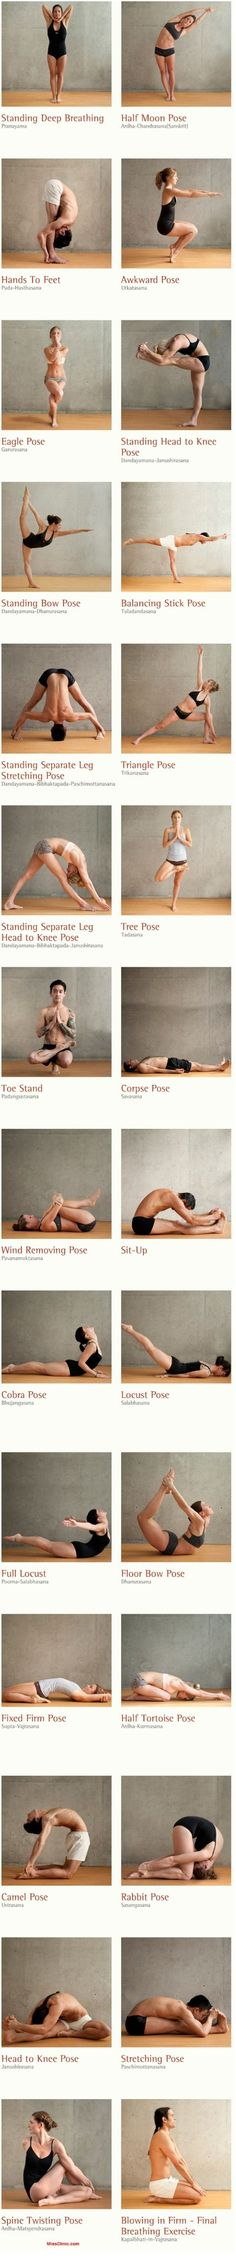 26 Healthy #Yoga Postures. Namaste my friends :)